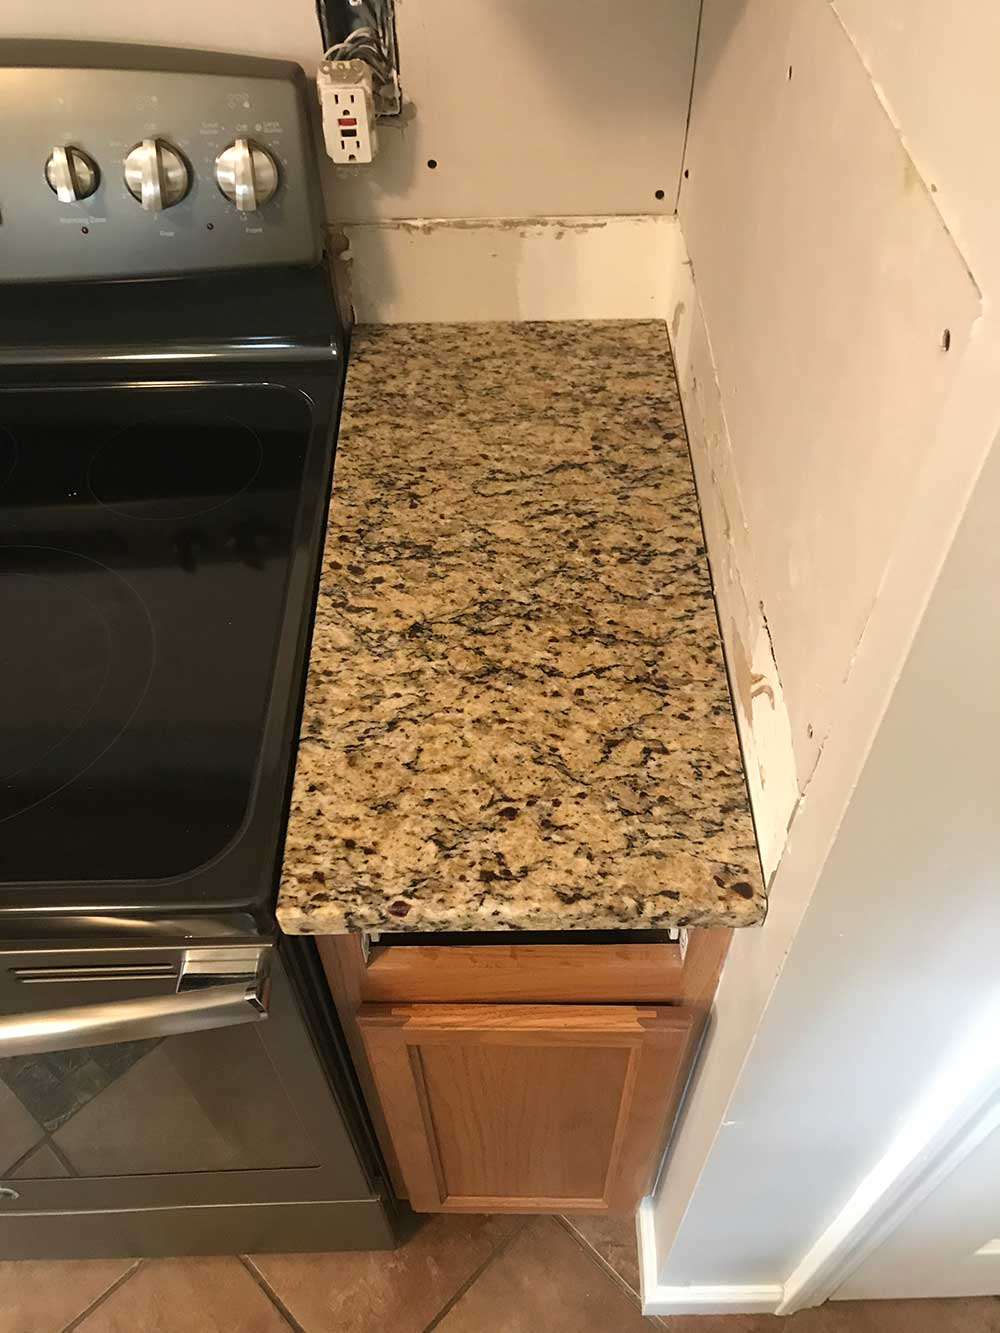 Santa Cecilia classic granite countertops in Gay, GA - After photos